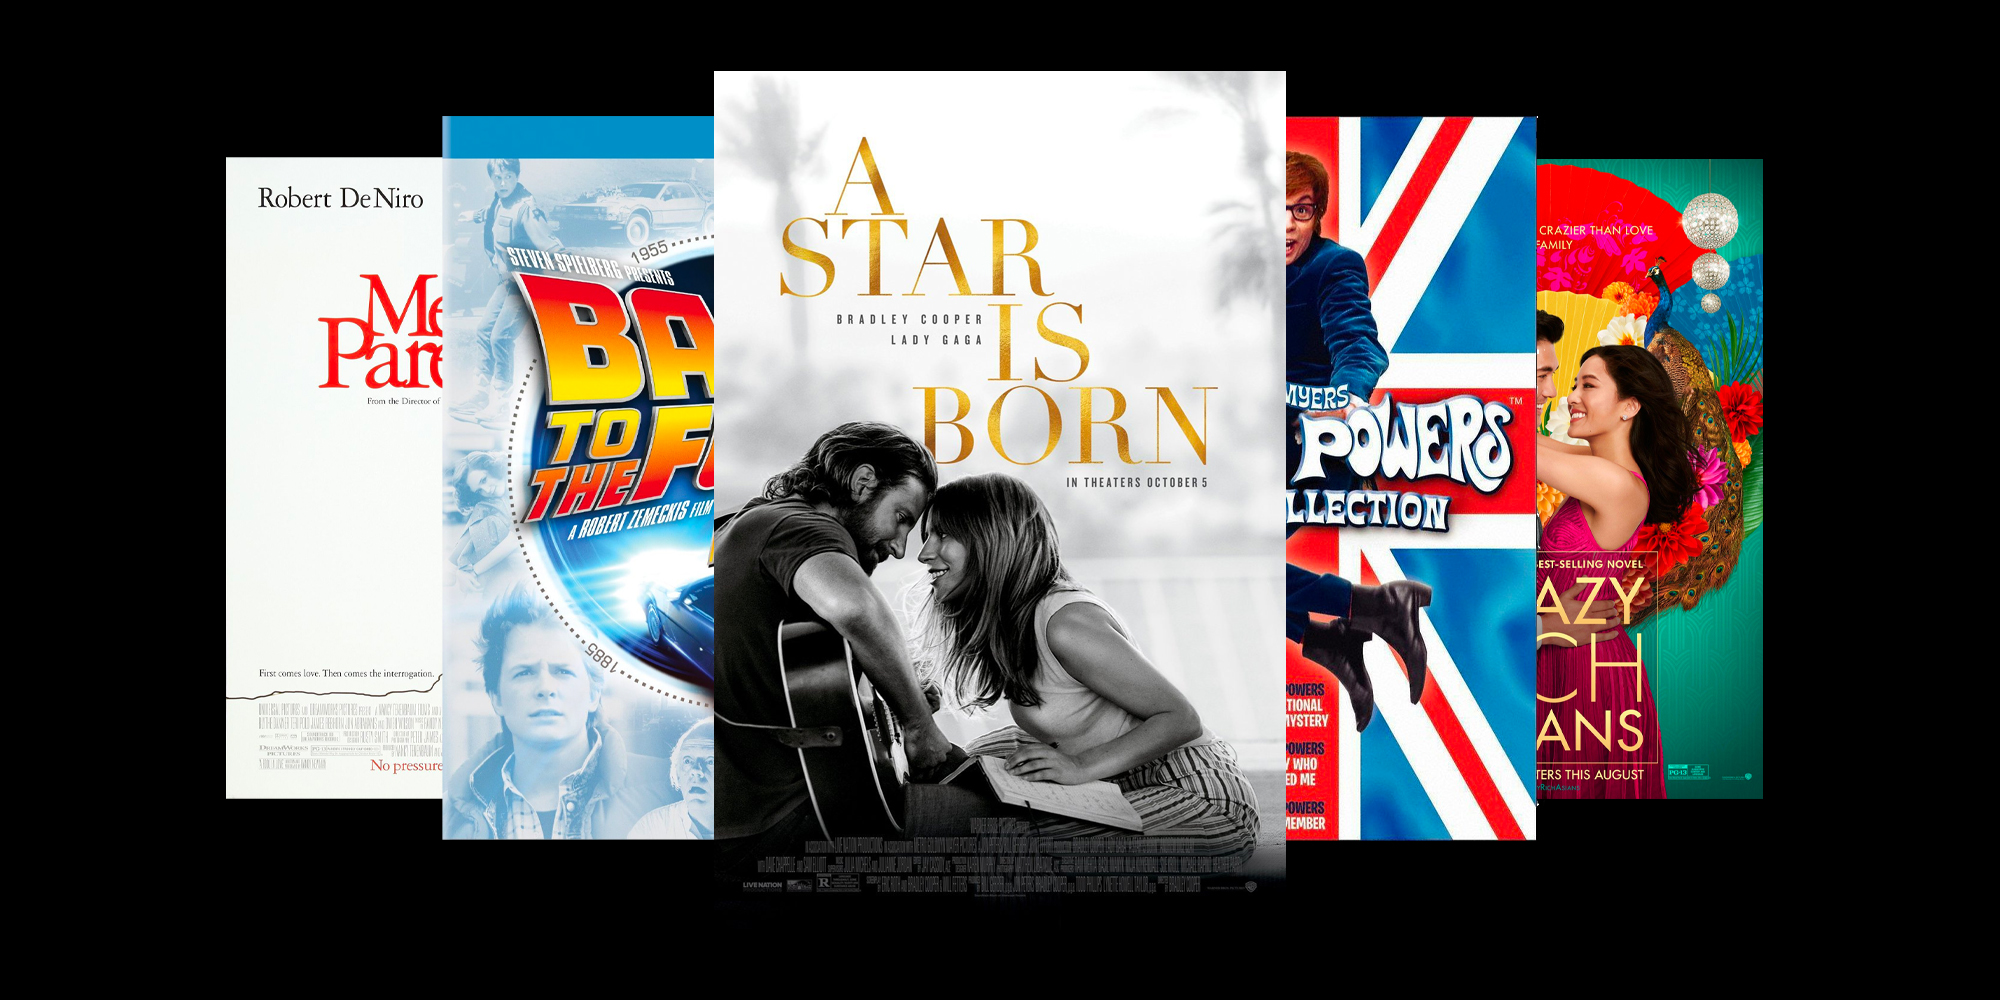 This week's best iTunes movie deals: A Star is Born $10, Trilogies for $15, $1 rental, more